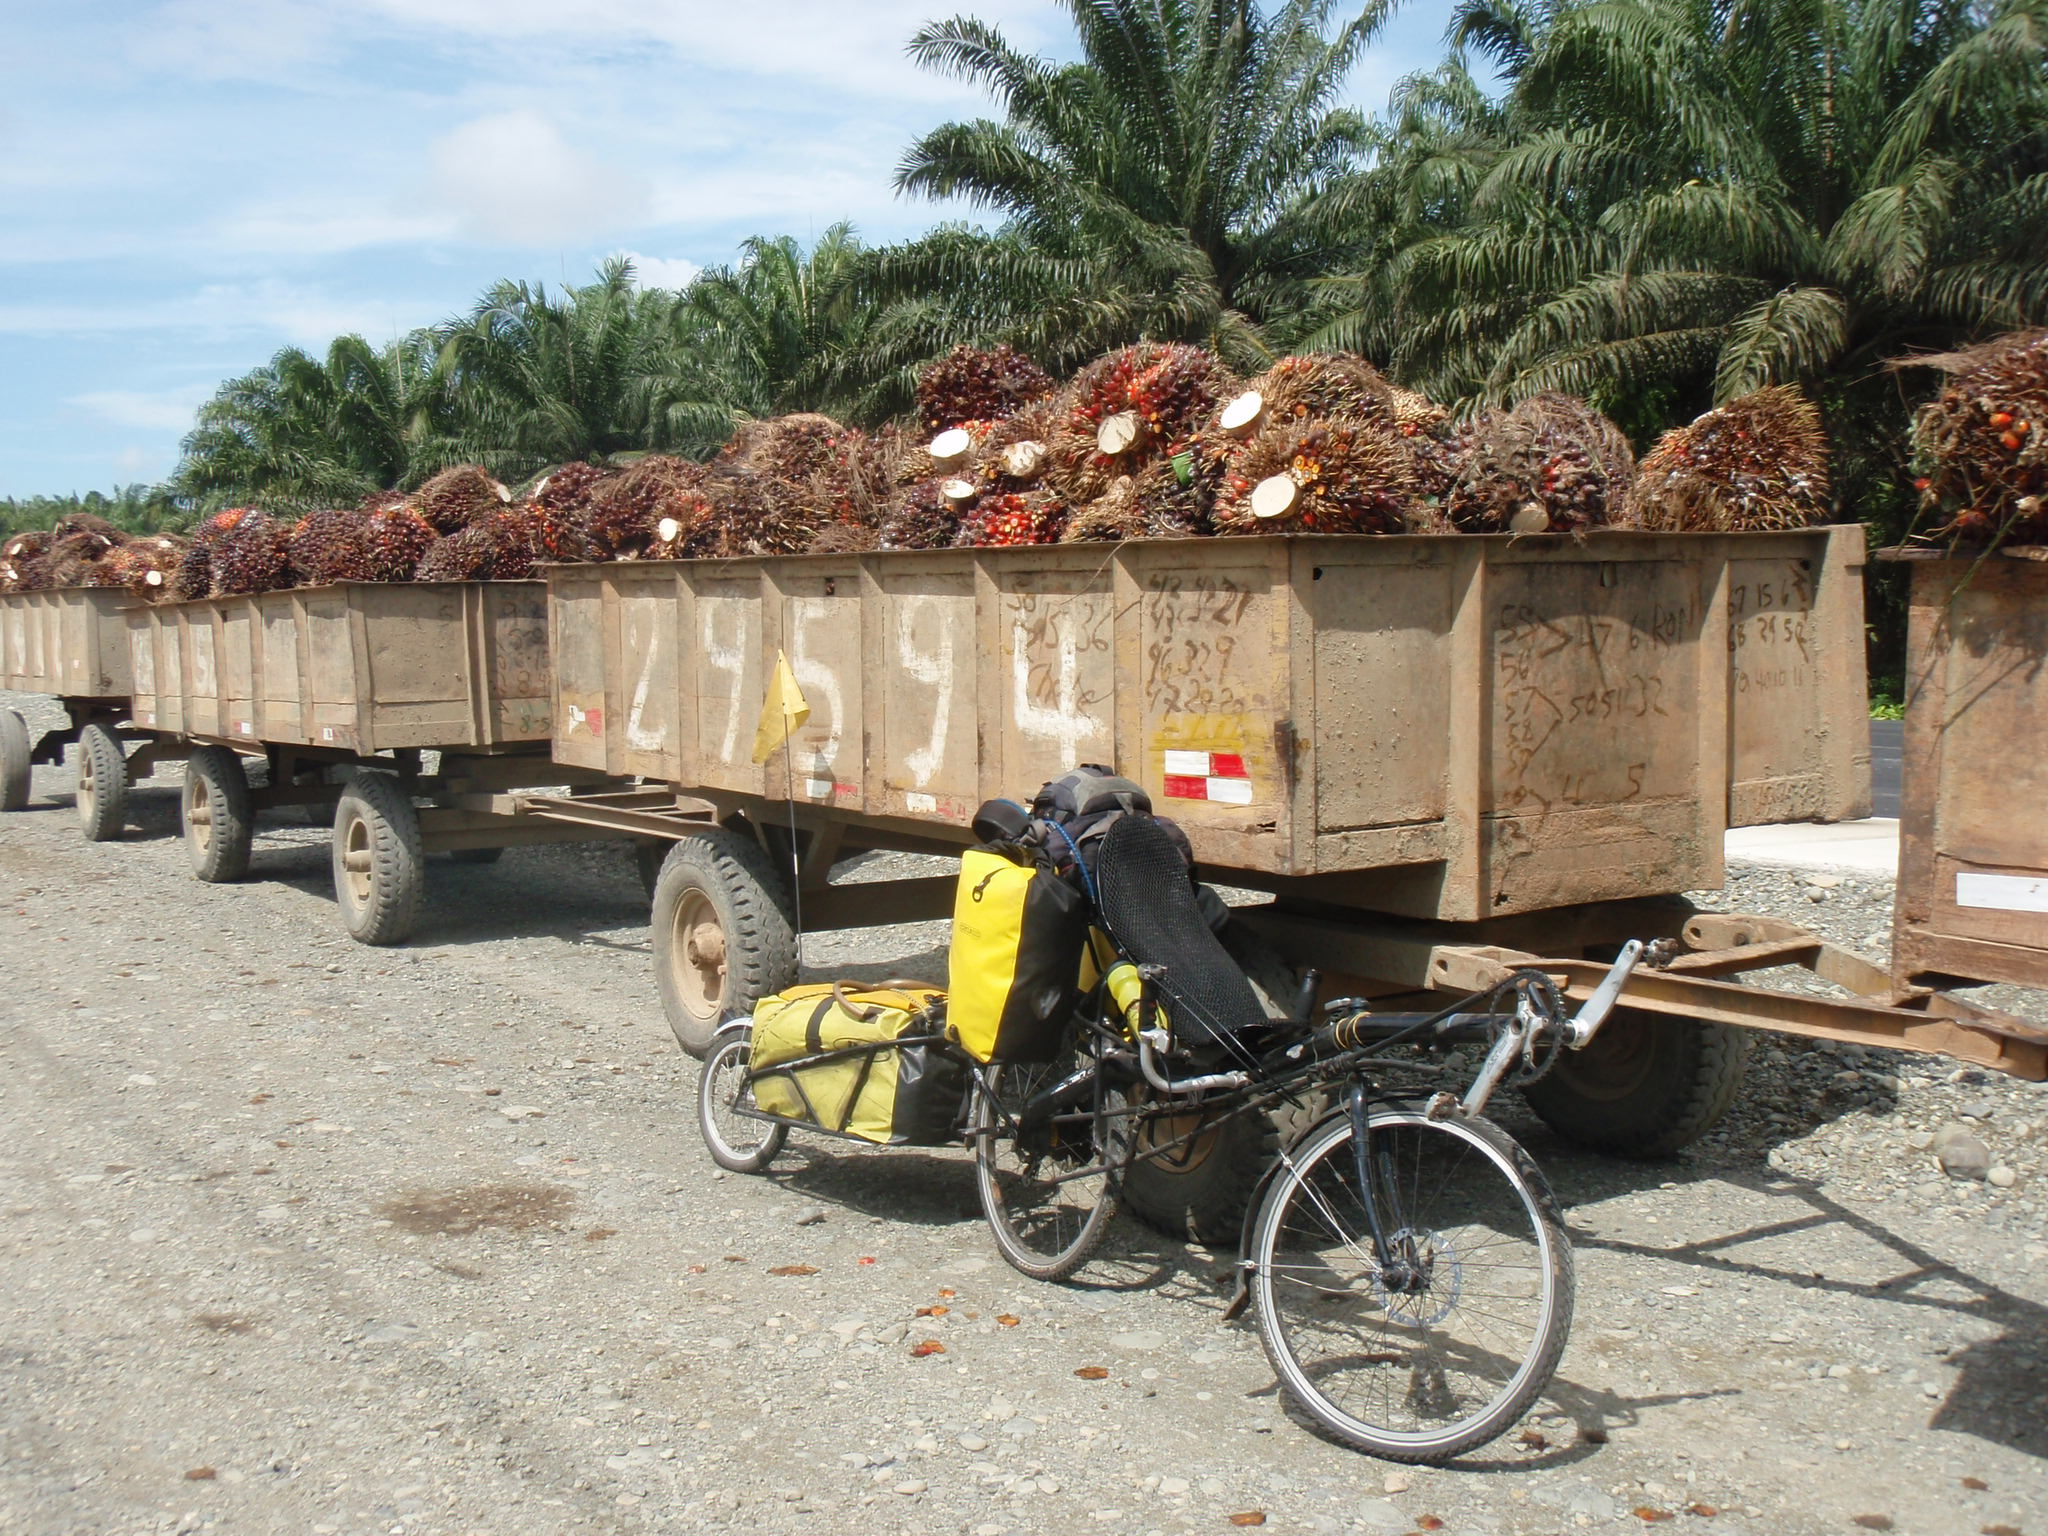 Truck loads of Palm Nuts headed for processing into Palm Oil